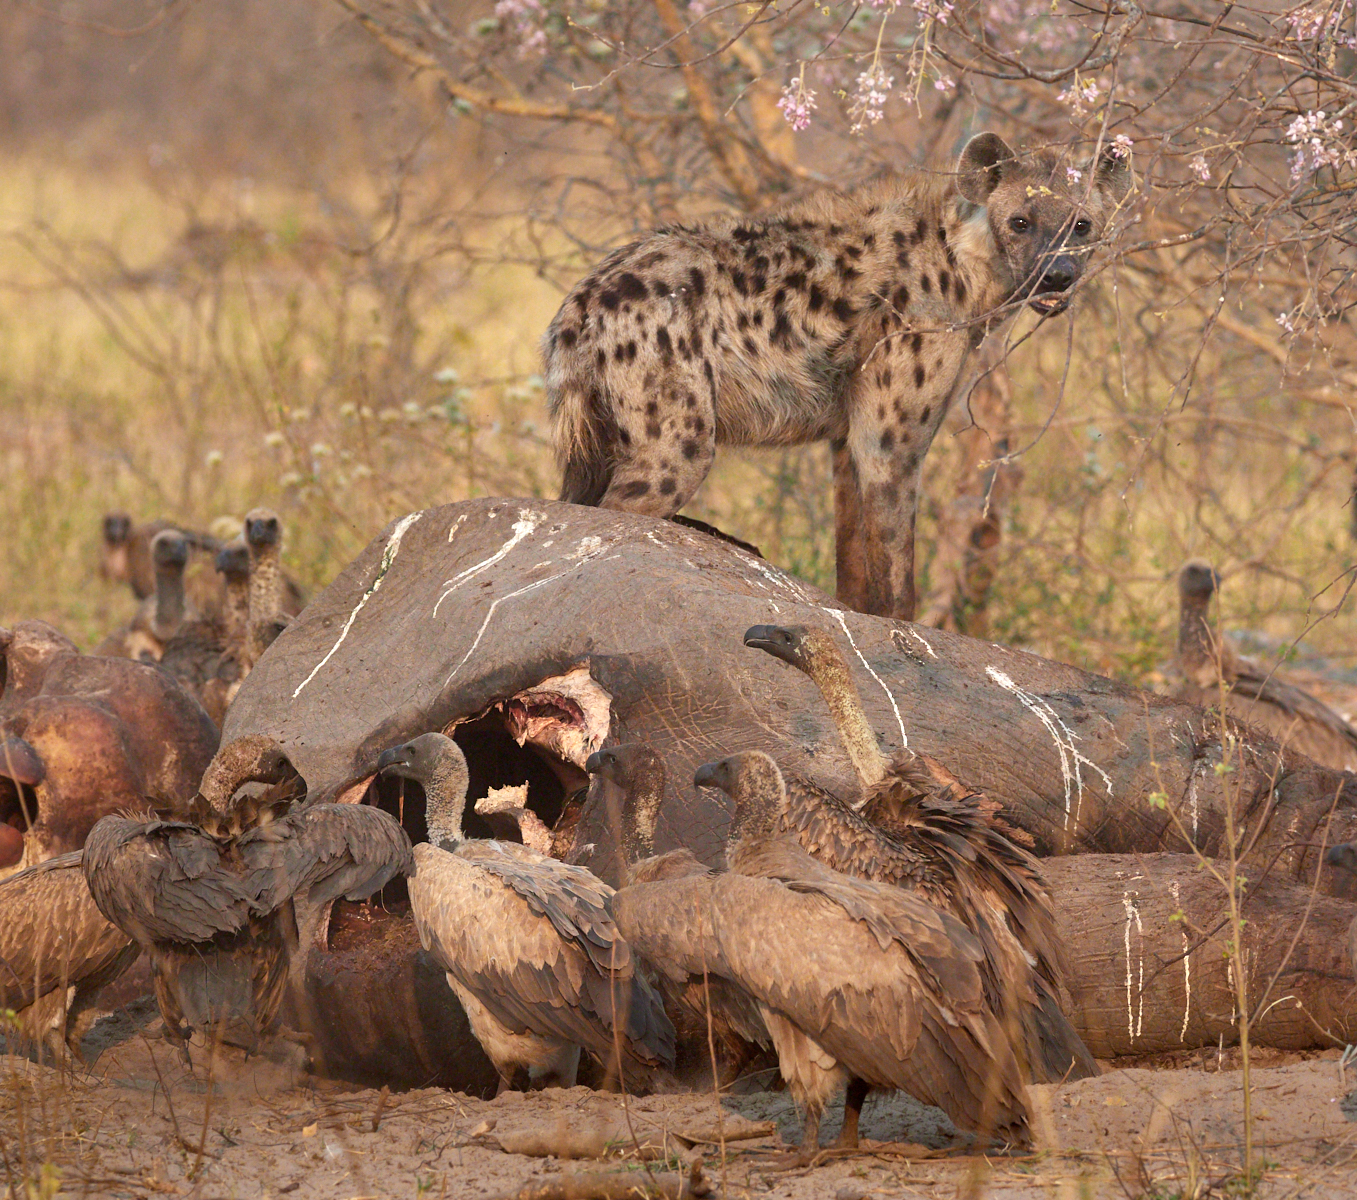 Spotted hyena on elephant killed 4 days before by lions of the Northern Pride, Savute